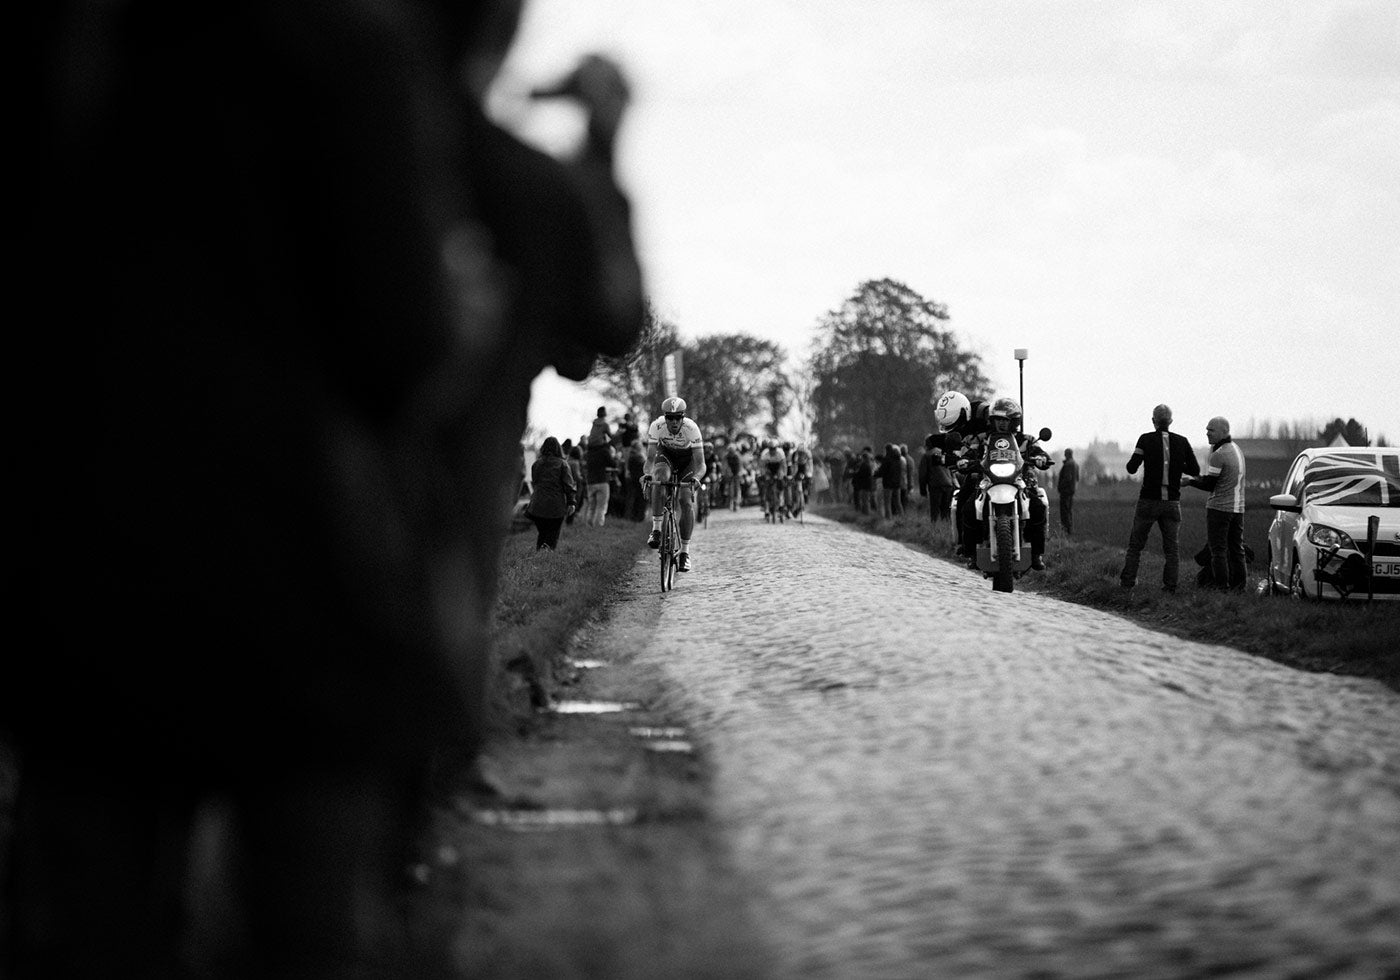 Paris-Roubaix-Bike-Race.jpg